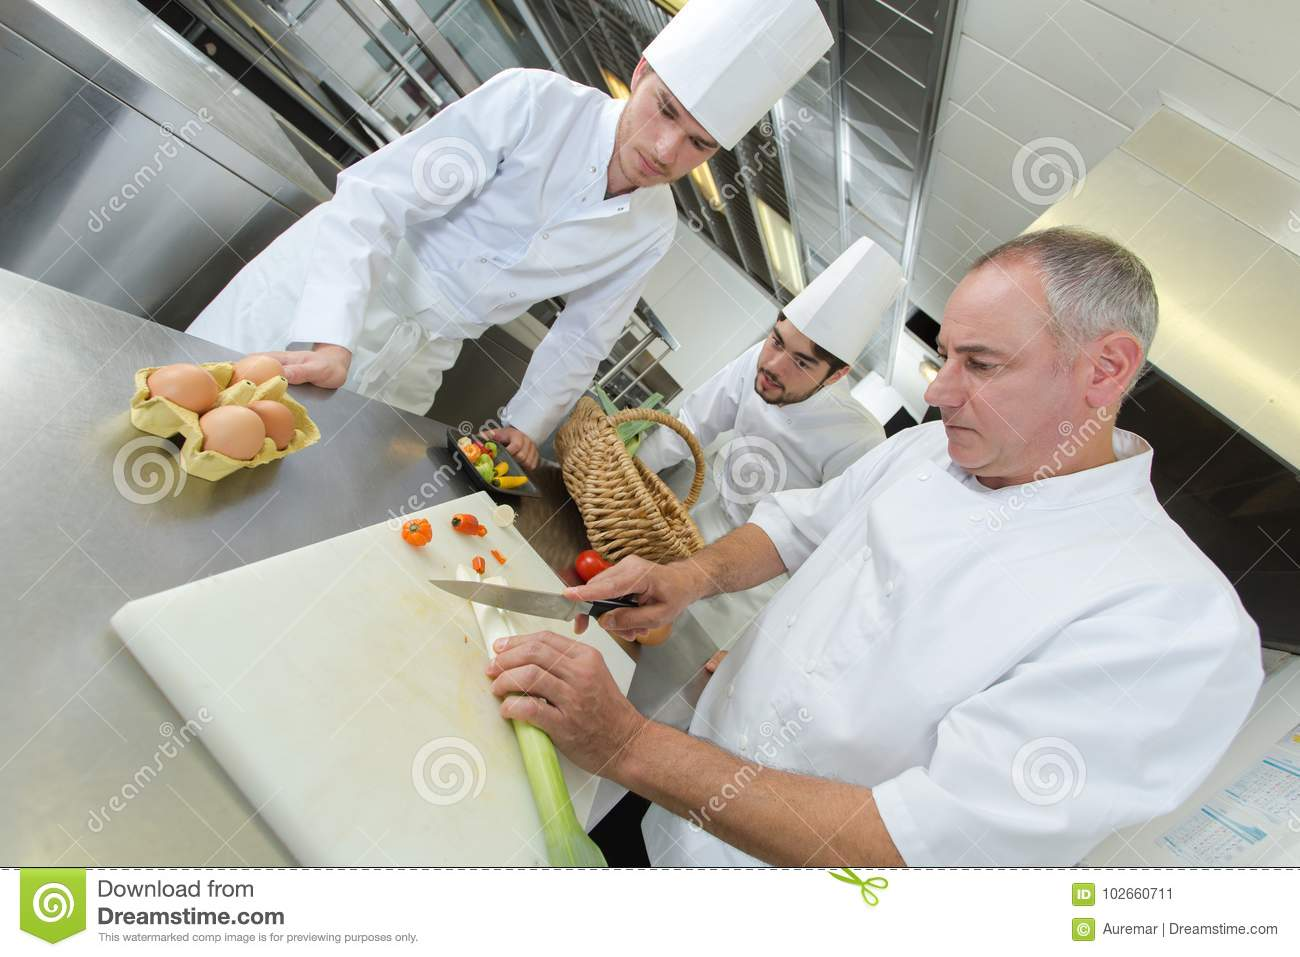 Head-chef teaching colleagues how to slice vegetables